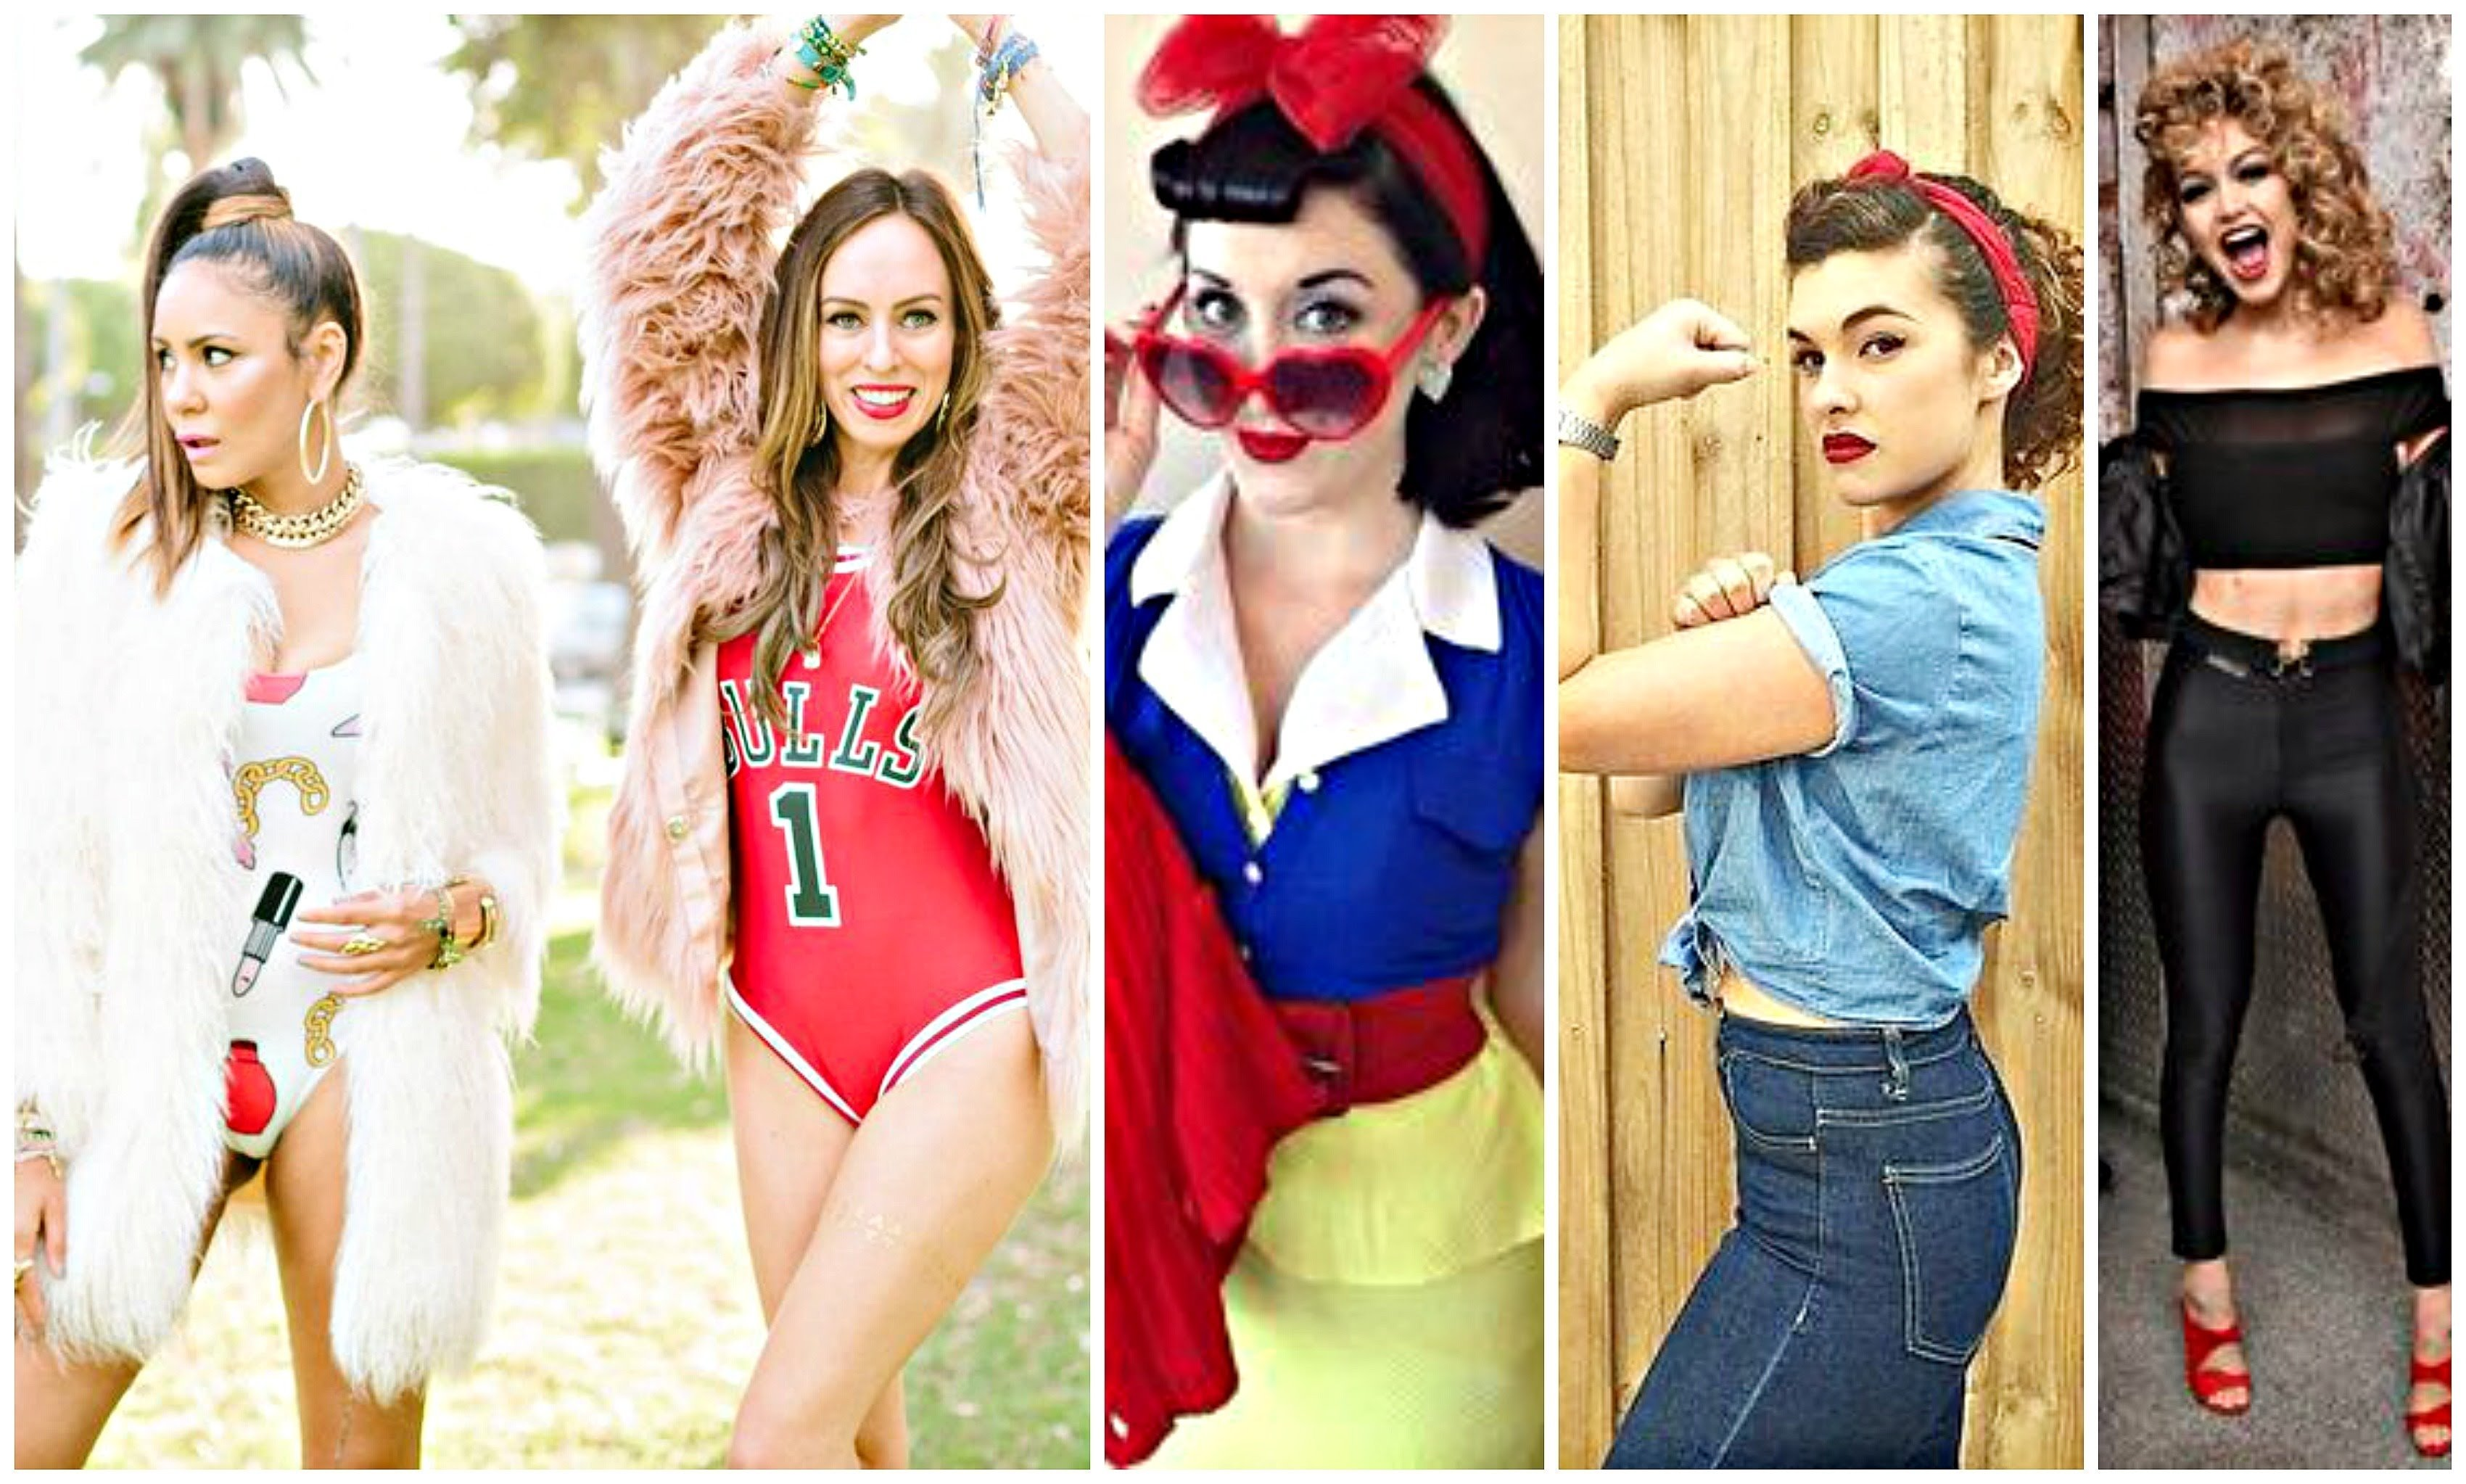 10 Stylish At Home Costume Ideas For Women top halloween costume ideas for women youtube 8 2021